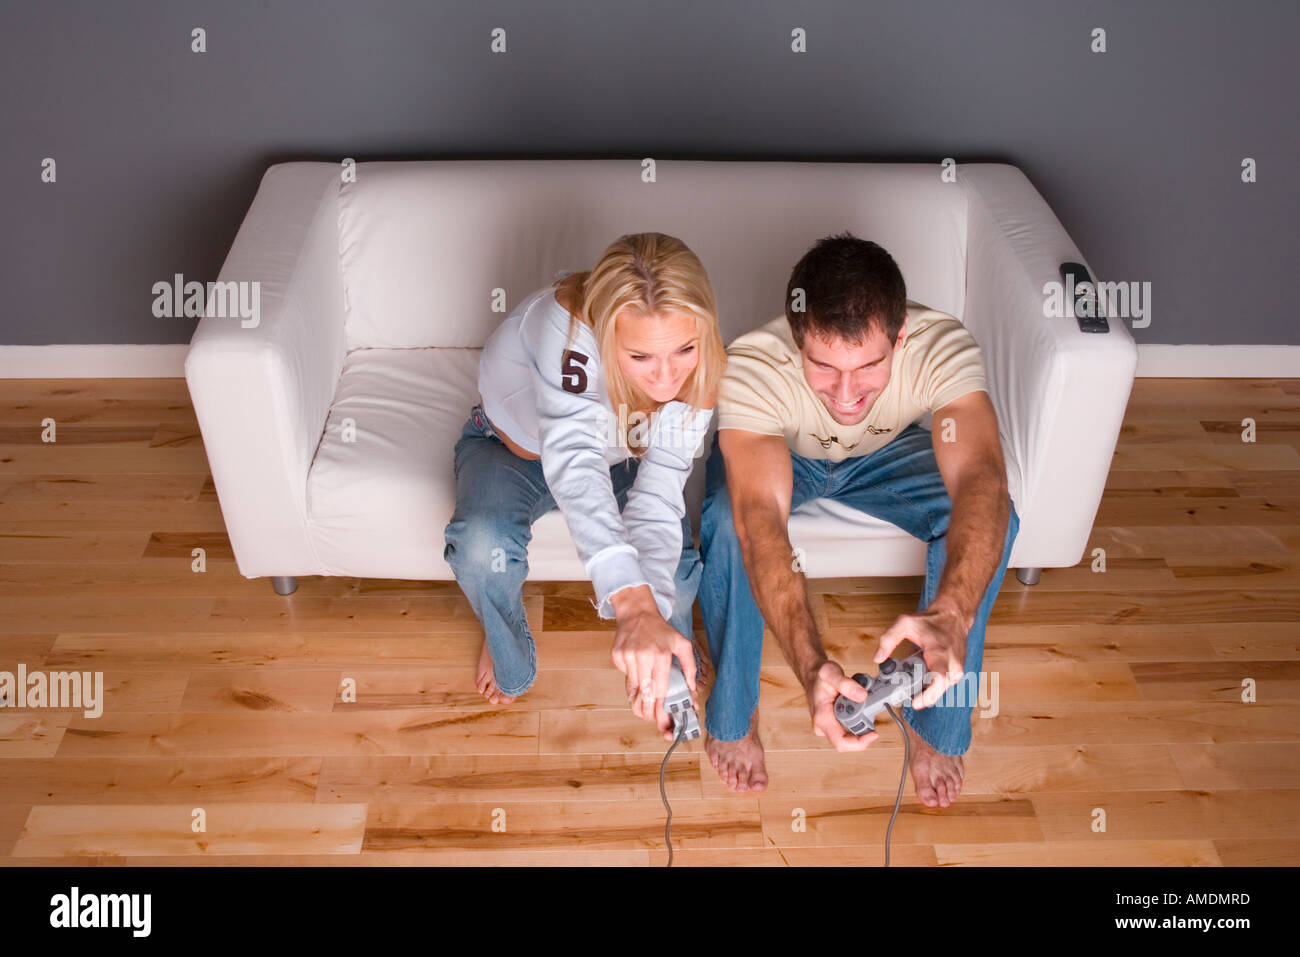 Young couple playing video game - Stock Image